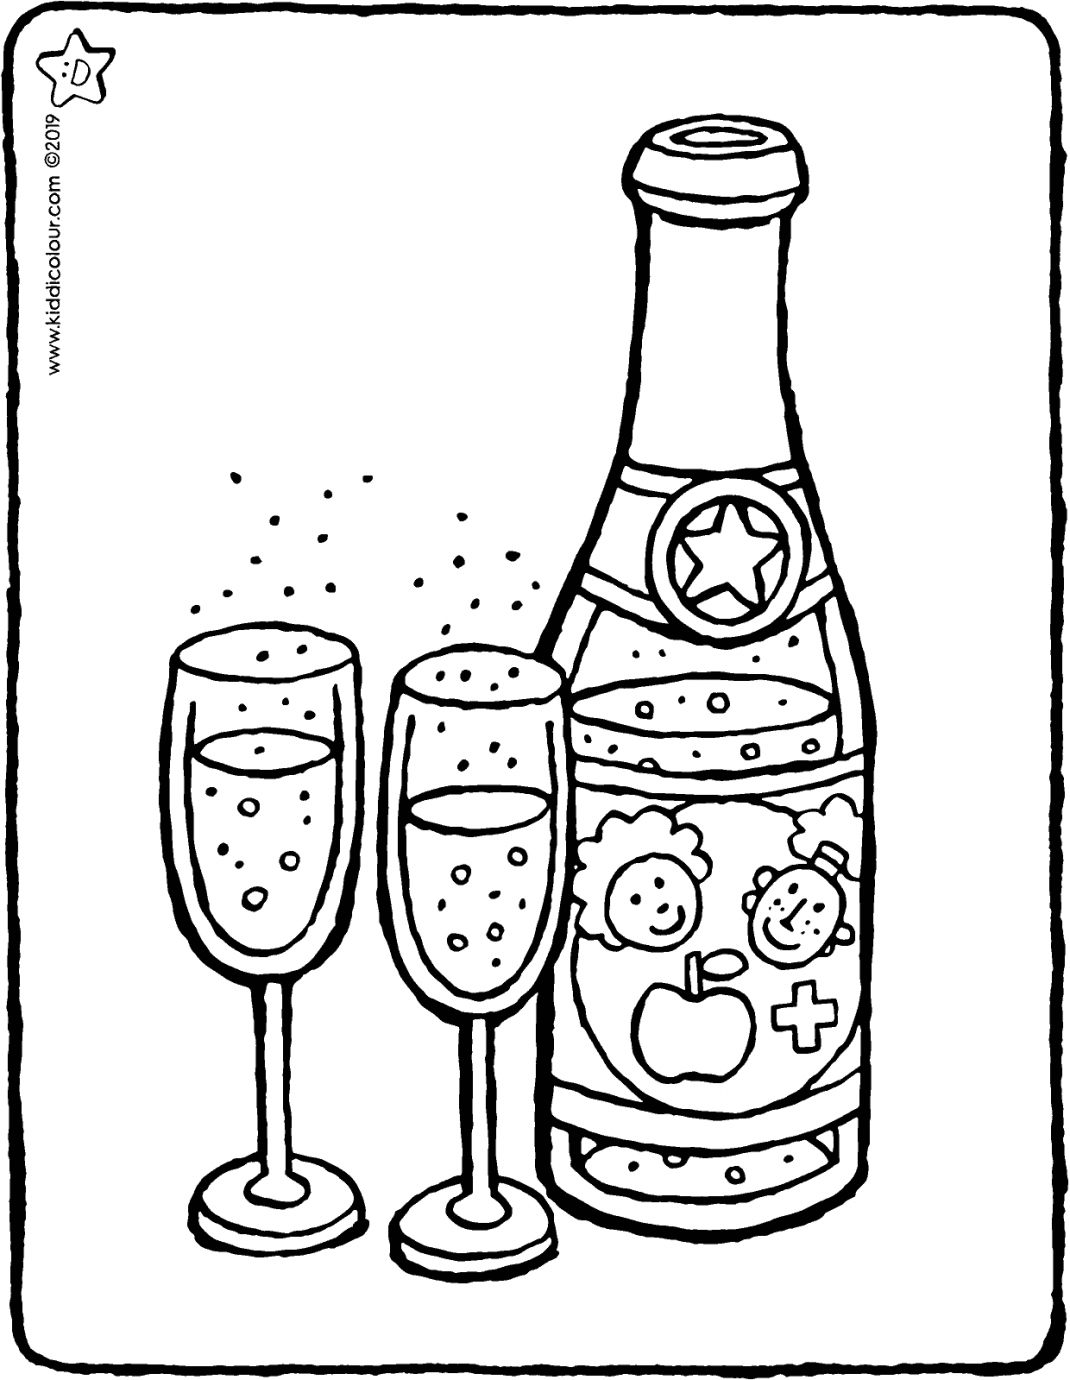 children's champagne colouring page colouring picture drawing 01V